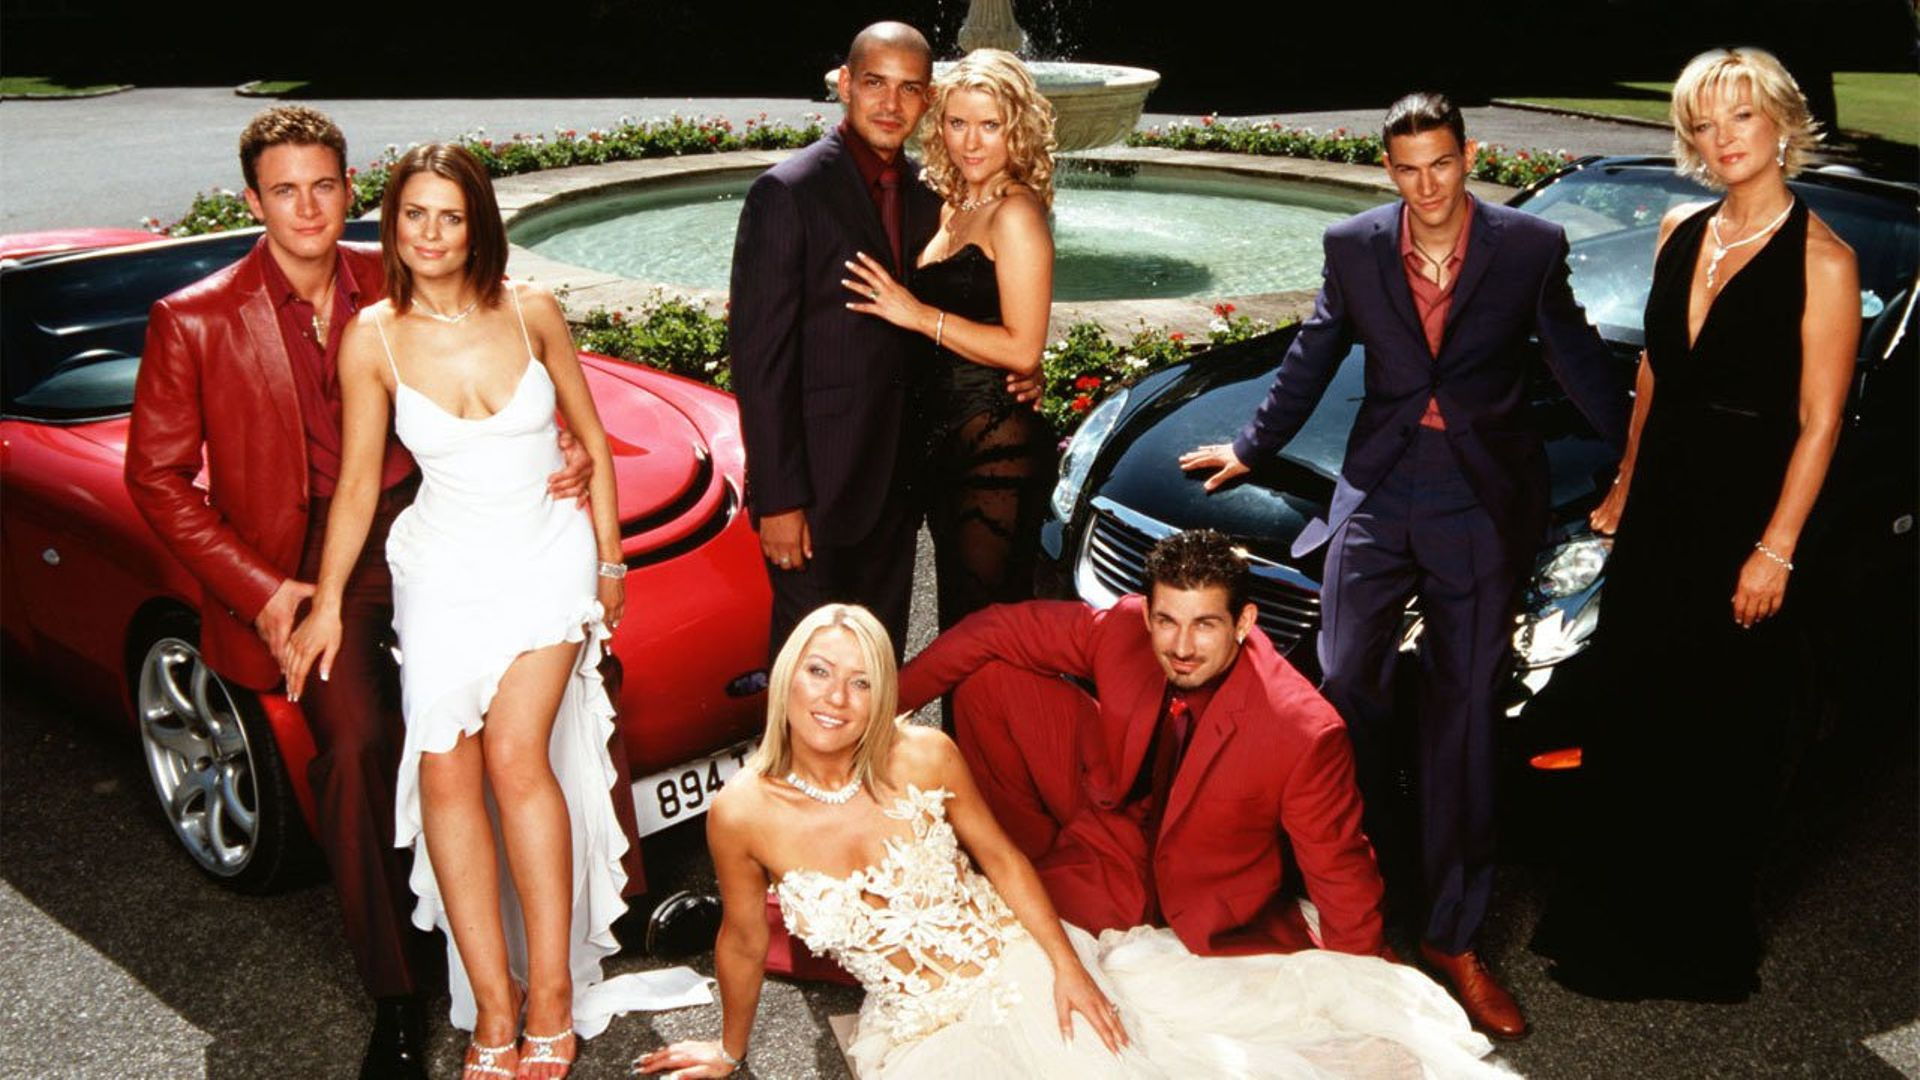 watch footballers wives season 1 online free